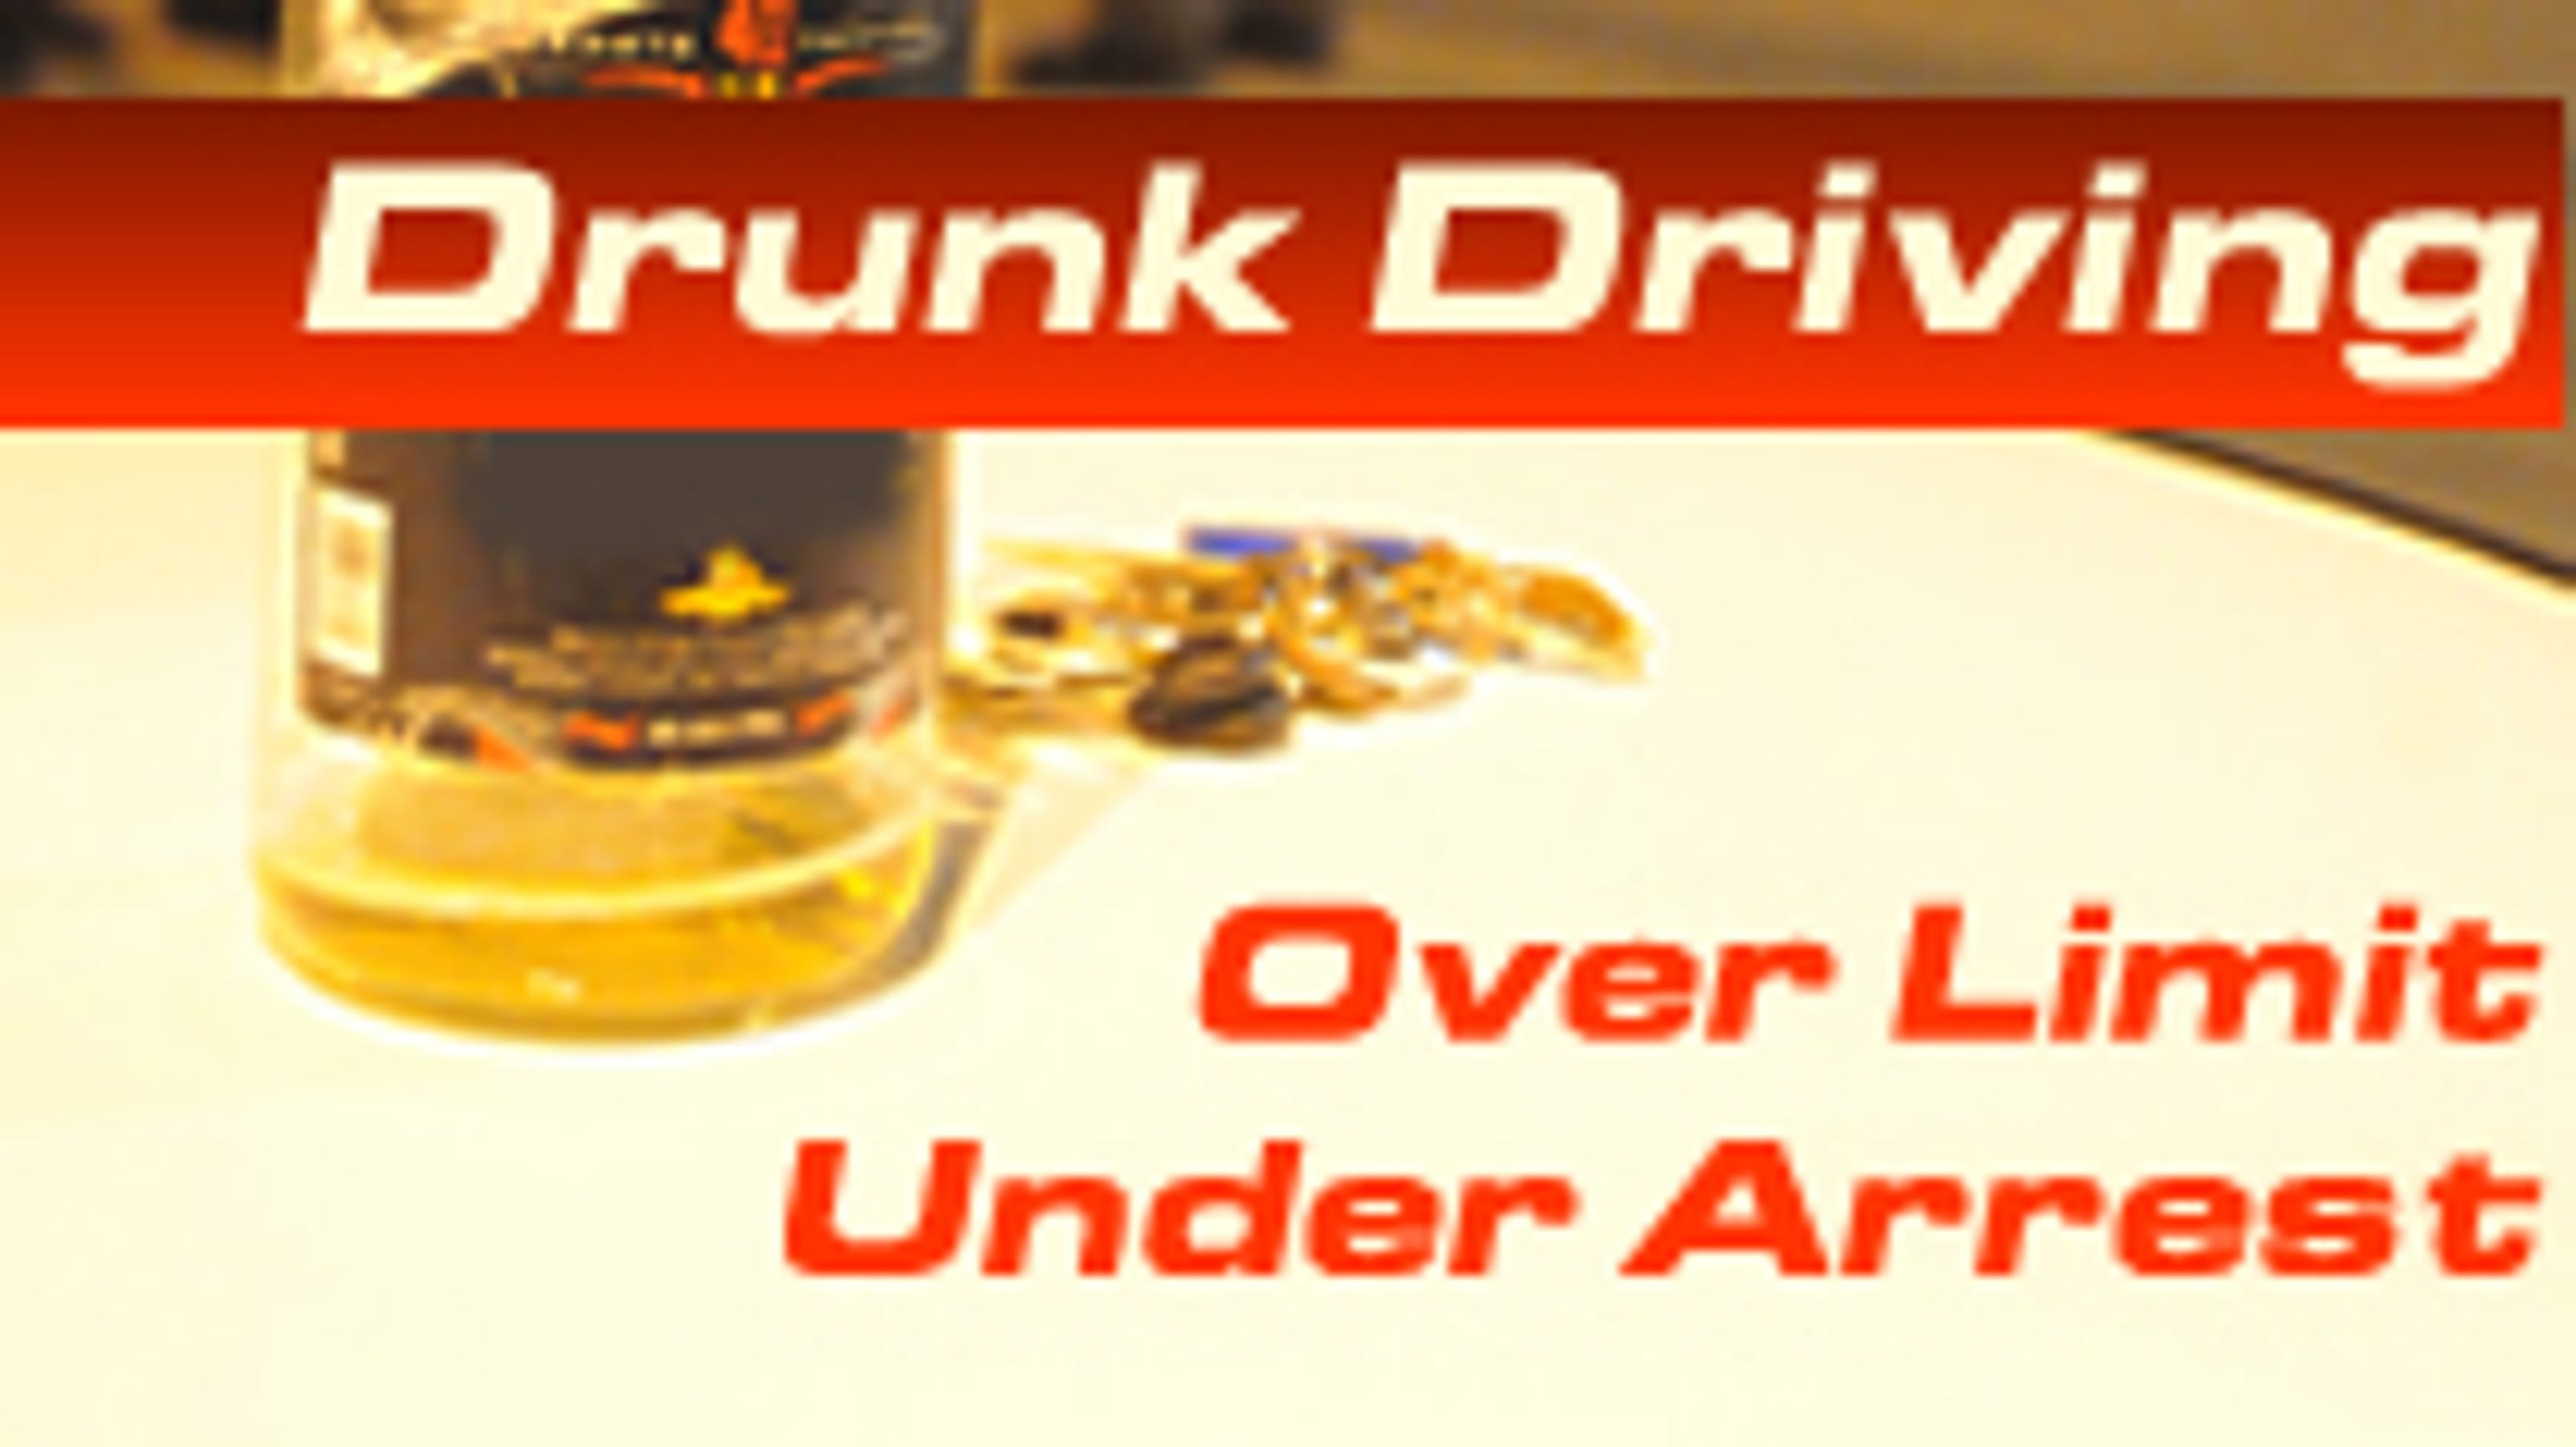 an examination of the account of driving under the influence of alcohol arrest in a video I recommend a copy of this report be forwarded to the district attorney's office for review and prosecution of greenfield for driving under the influence and driving with a blood alcohol concentration at or above the legal state limit.